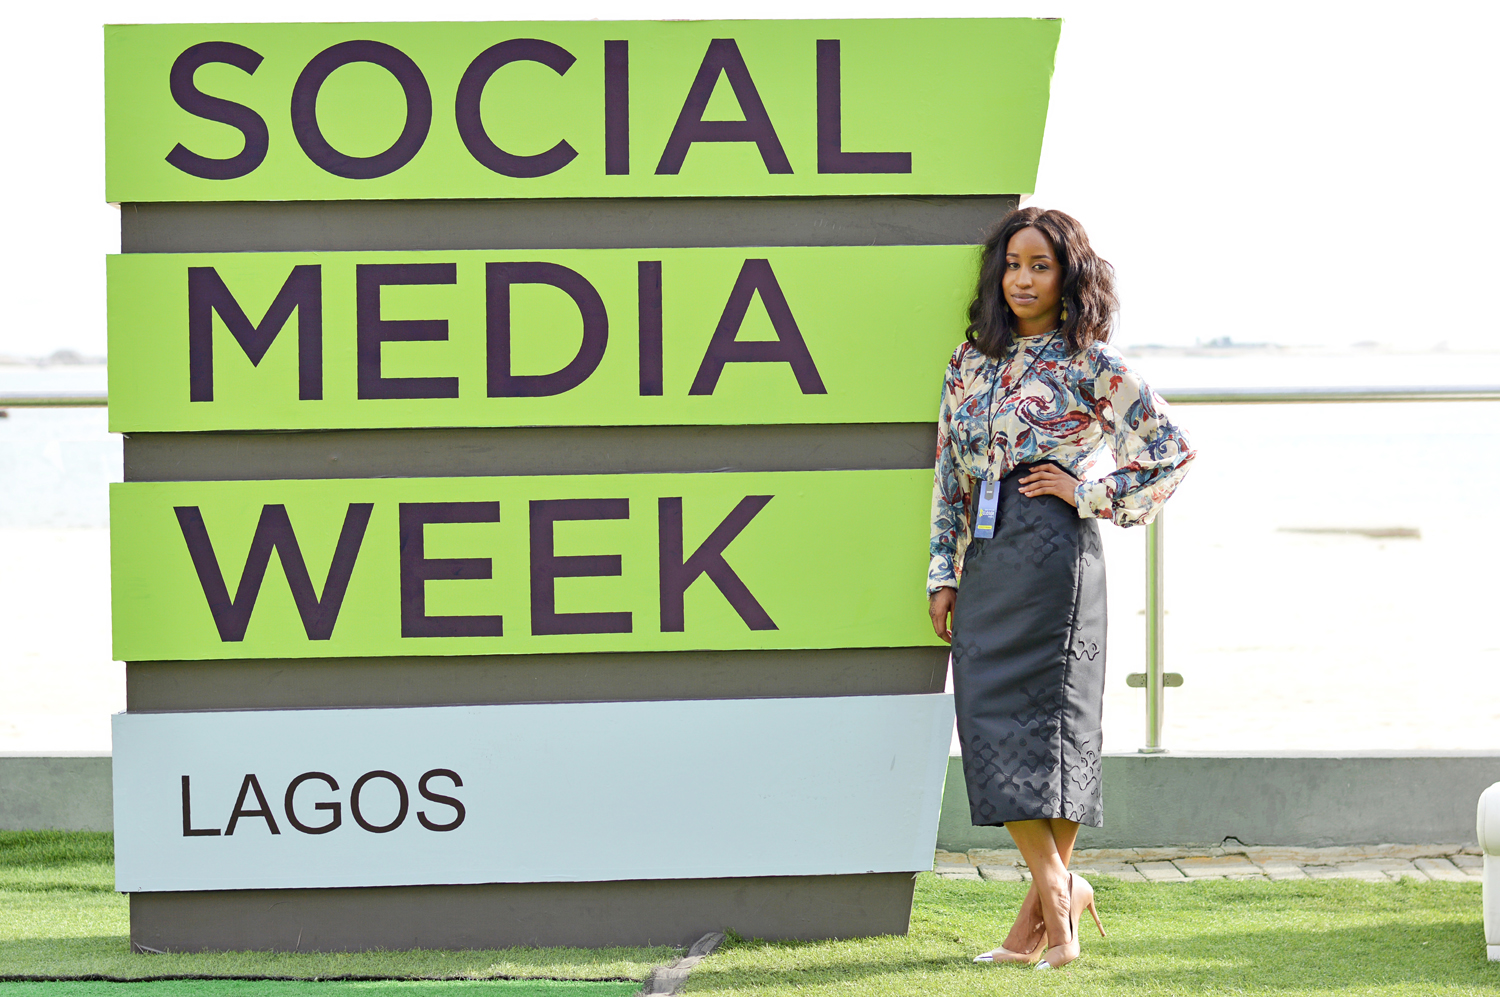 Lehlé Baldé at Social Media Week Lagos 2018